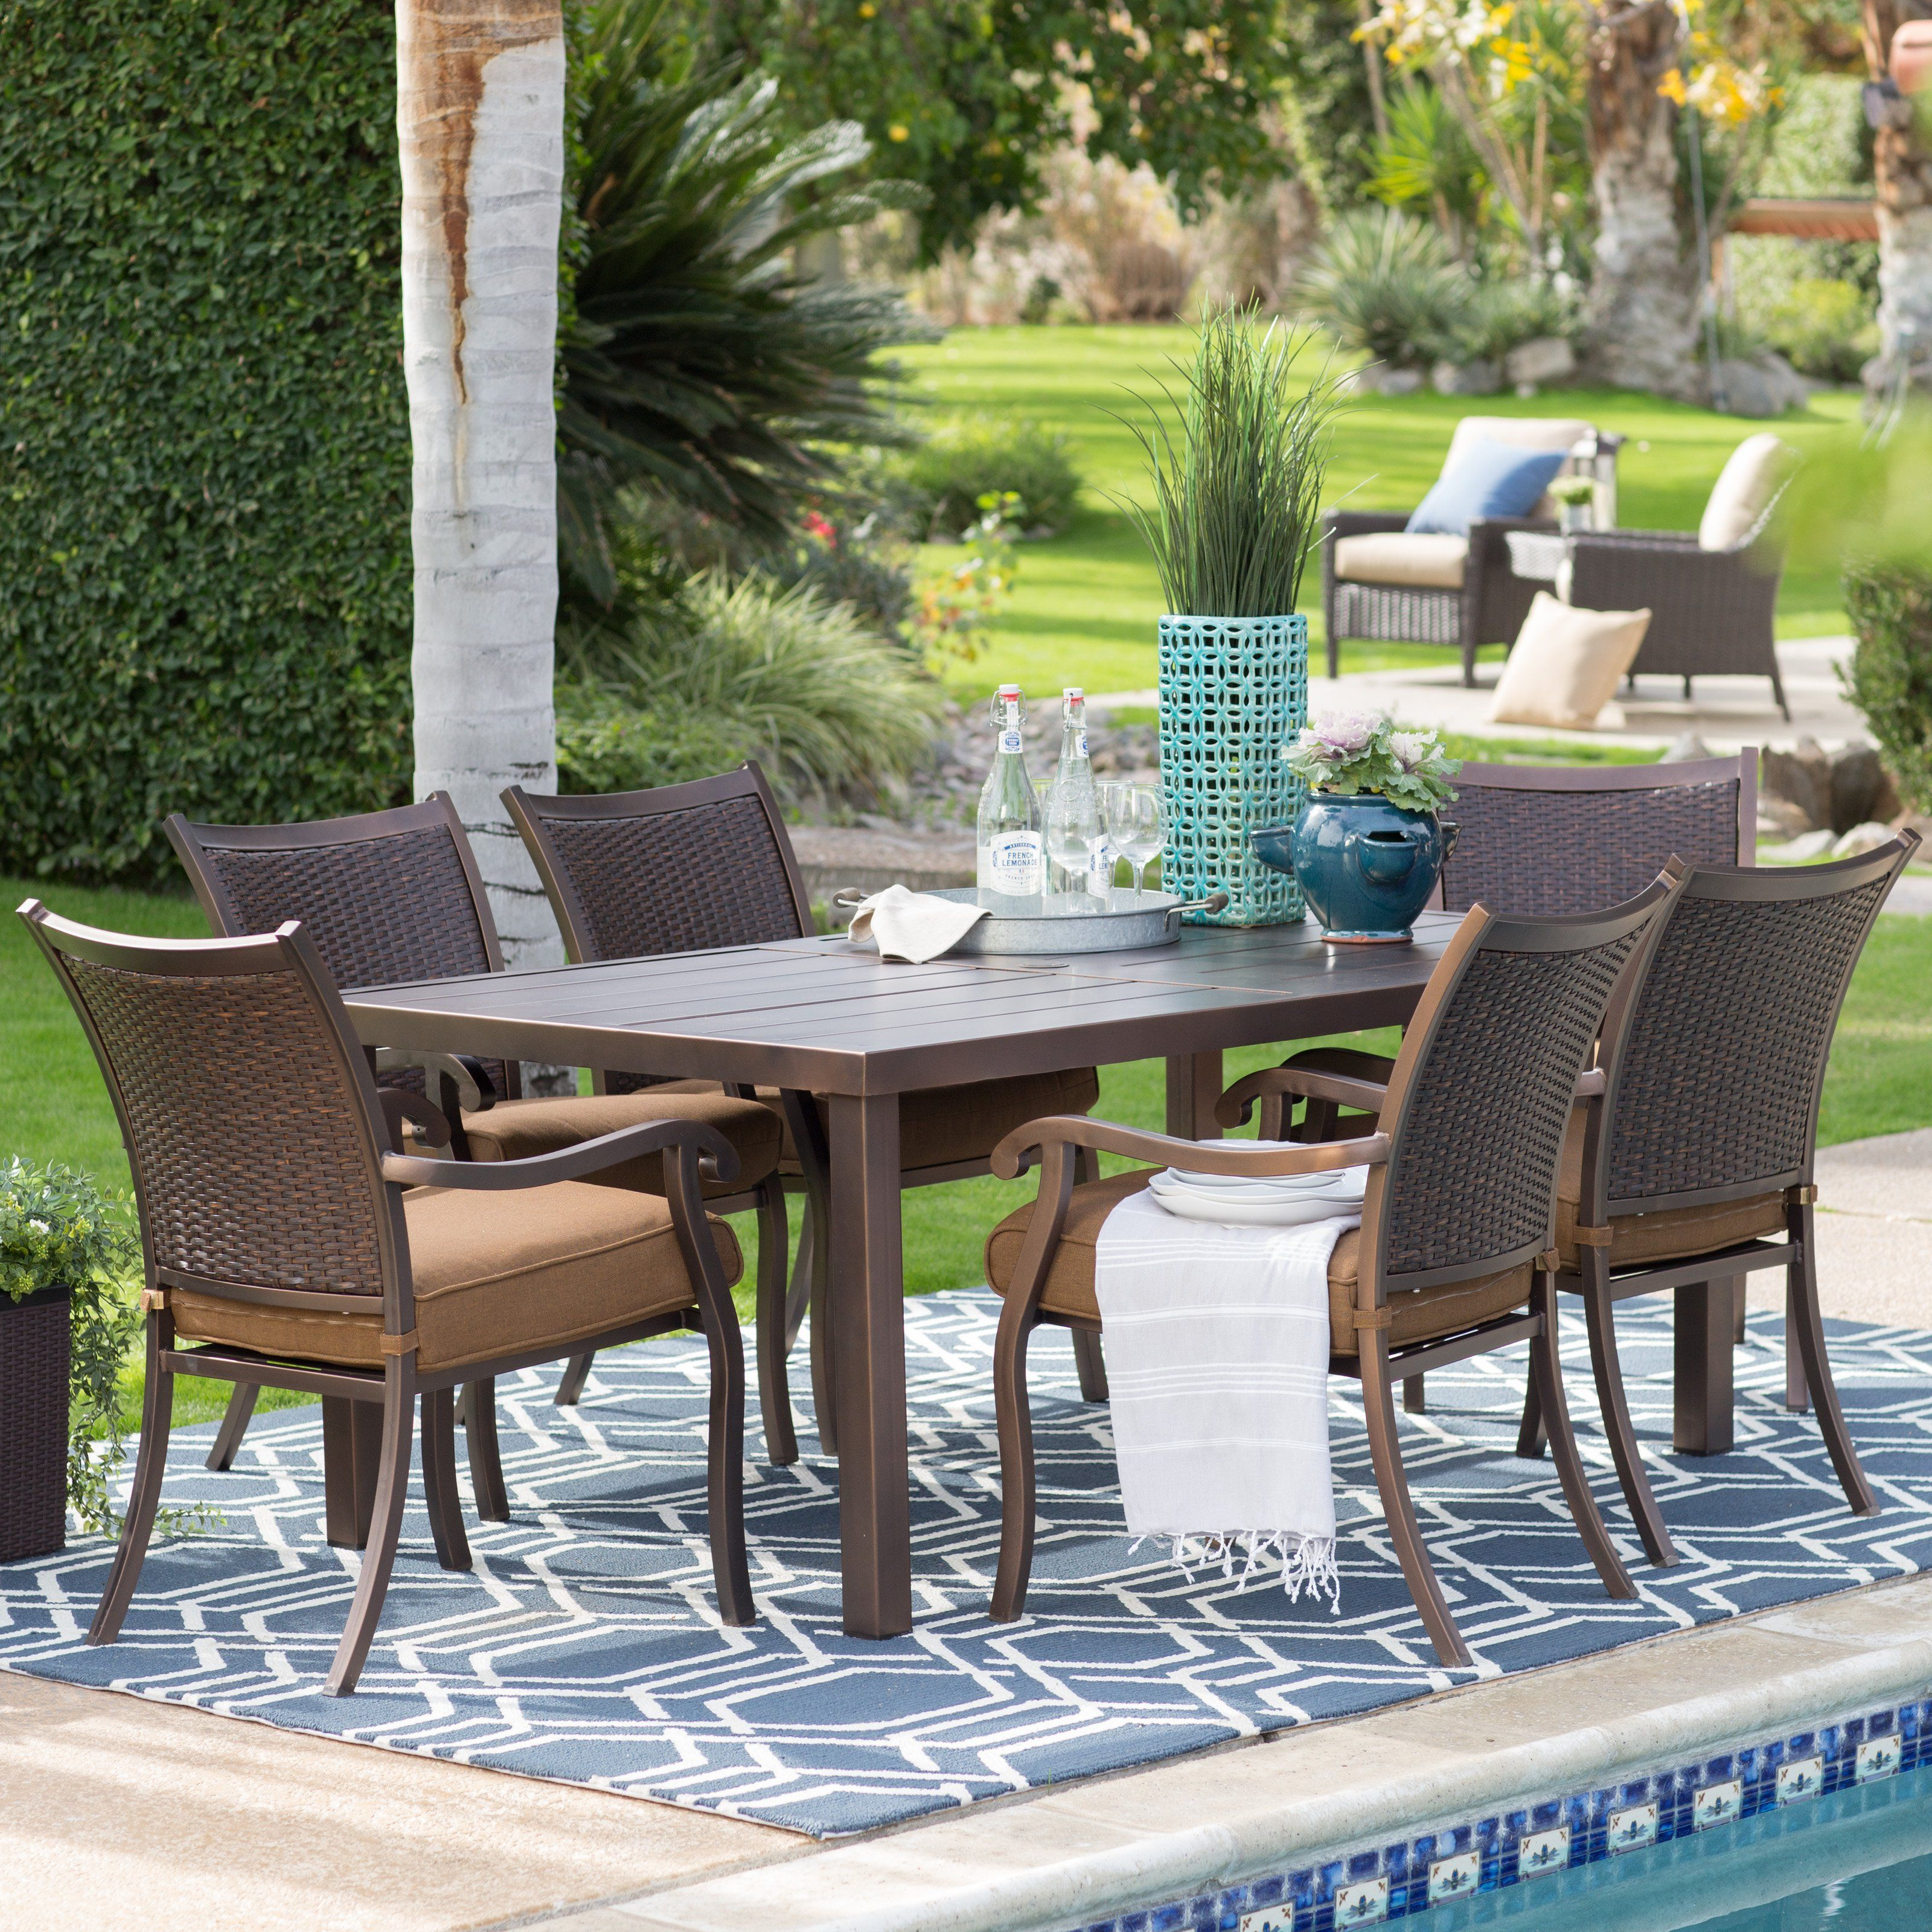 Belham Living San Marino Patio Woven Back Dining Chair And Steel Slatted  Table Set   Seats